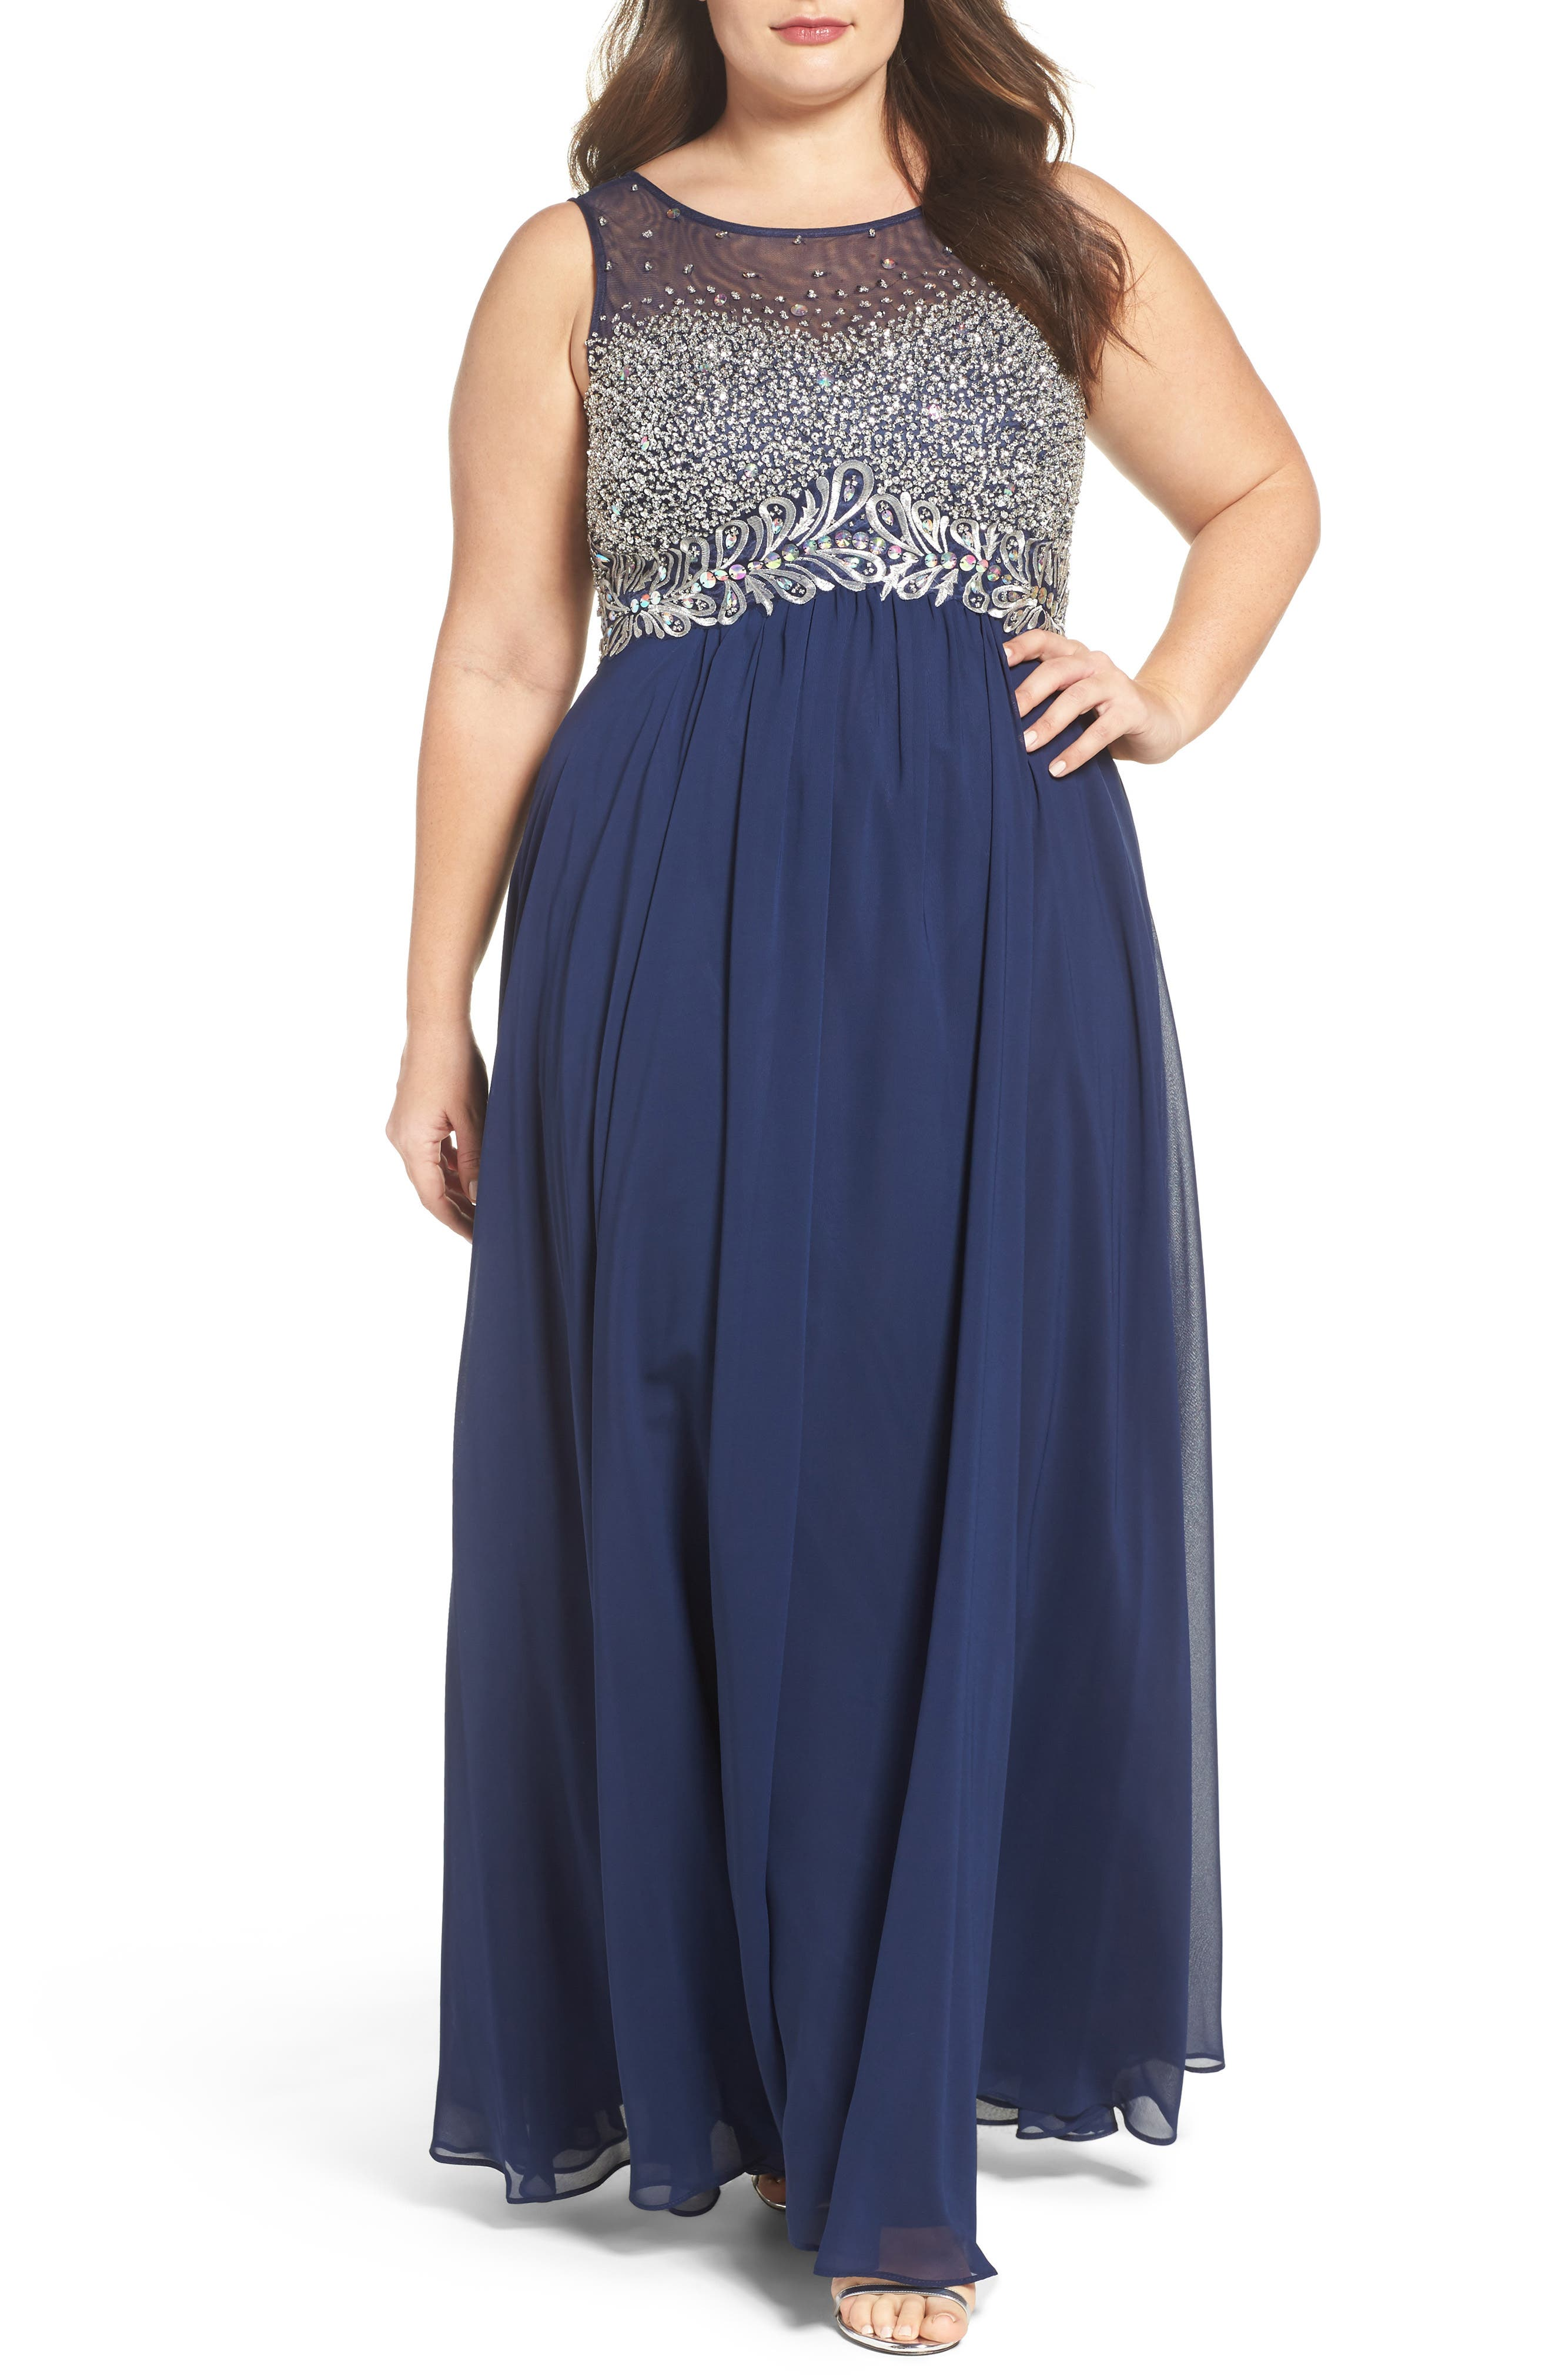 DECODE 1.8 Beaded Illusion Bodice A-Line Gown (Plus Size)